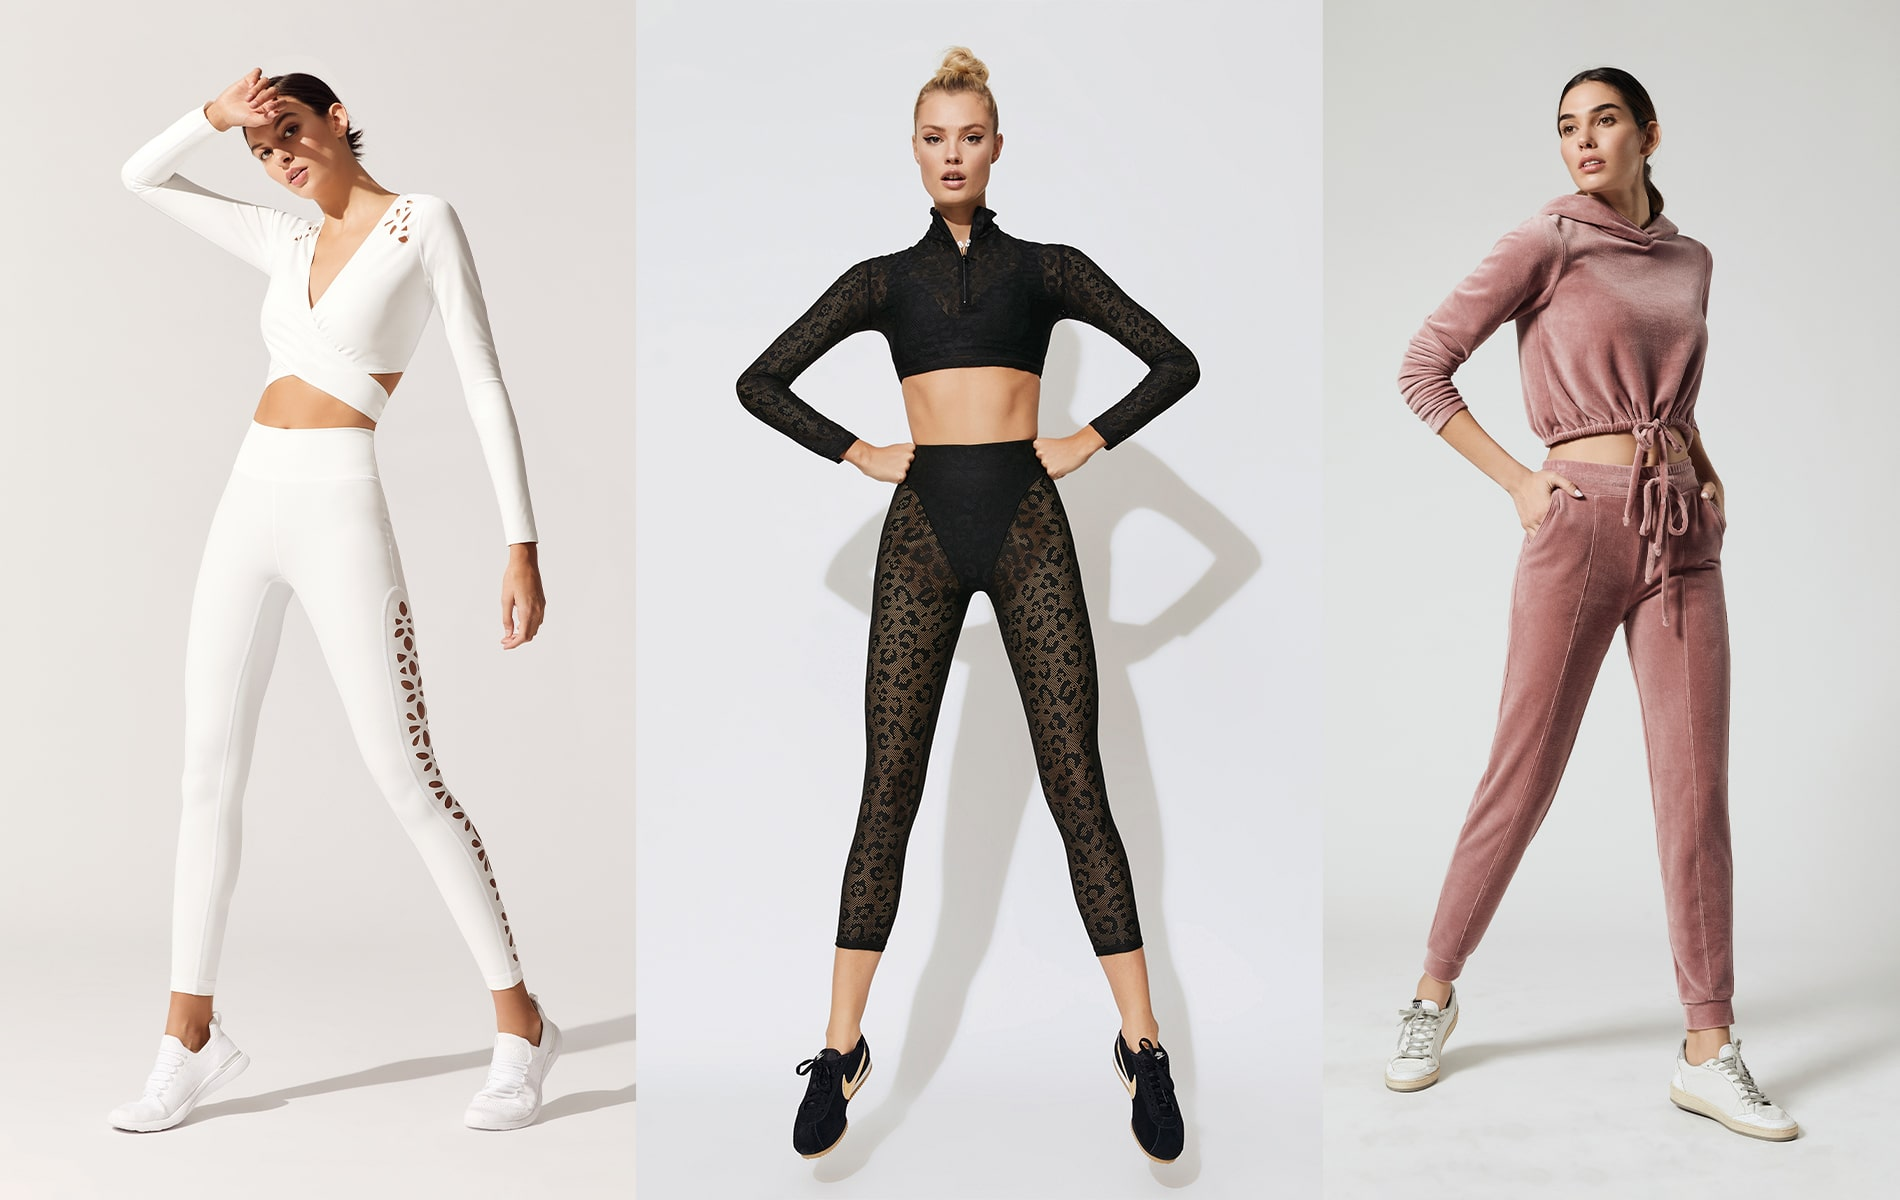 Carbon38 Gigi C Laser-Cut Tina Top and Hannah Leggings, Carbon38 Adam Selman Sport Long-Sleeve Crop Top and French-Cut Leggings, Carbon38 Year of Ours Velour Try-Out Crop Hoodie and Jogger Pant